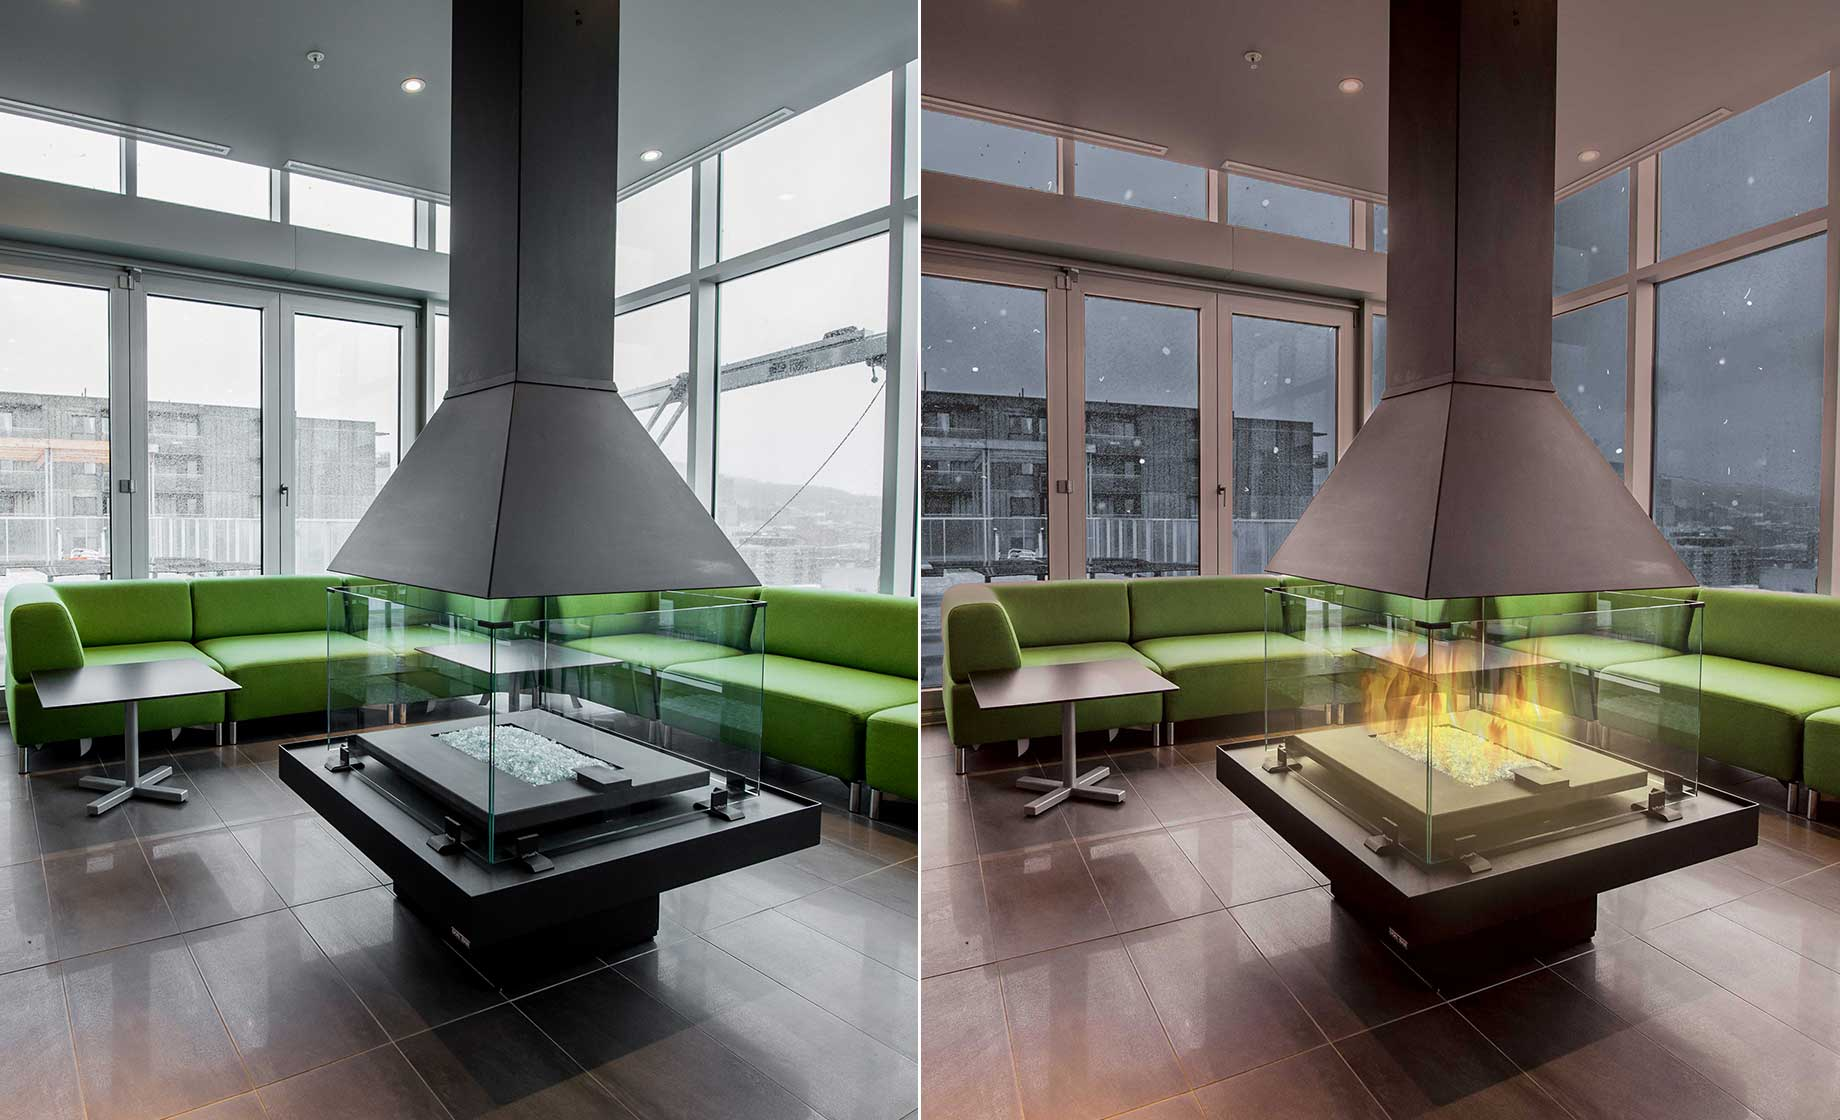 Before and After Photo Editing for Metropol Condos Building Wrap by Webmovement